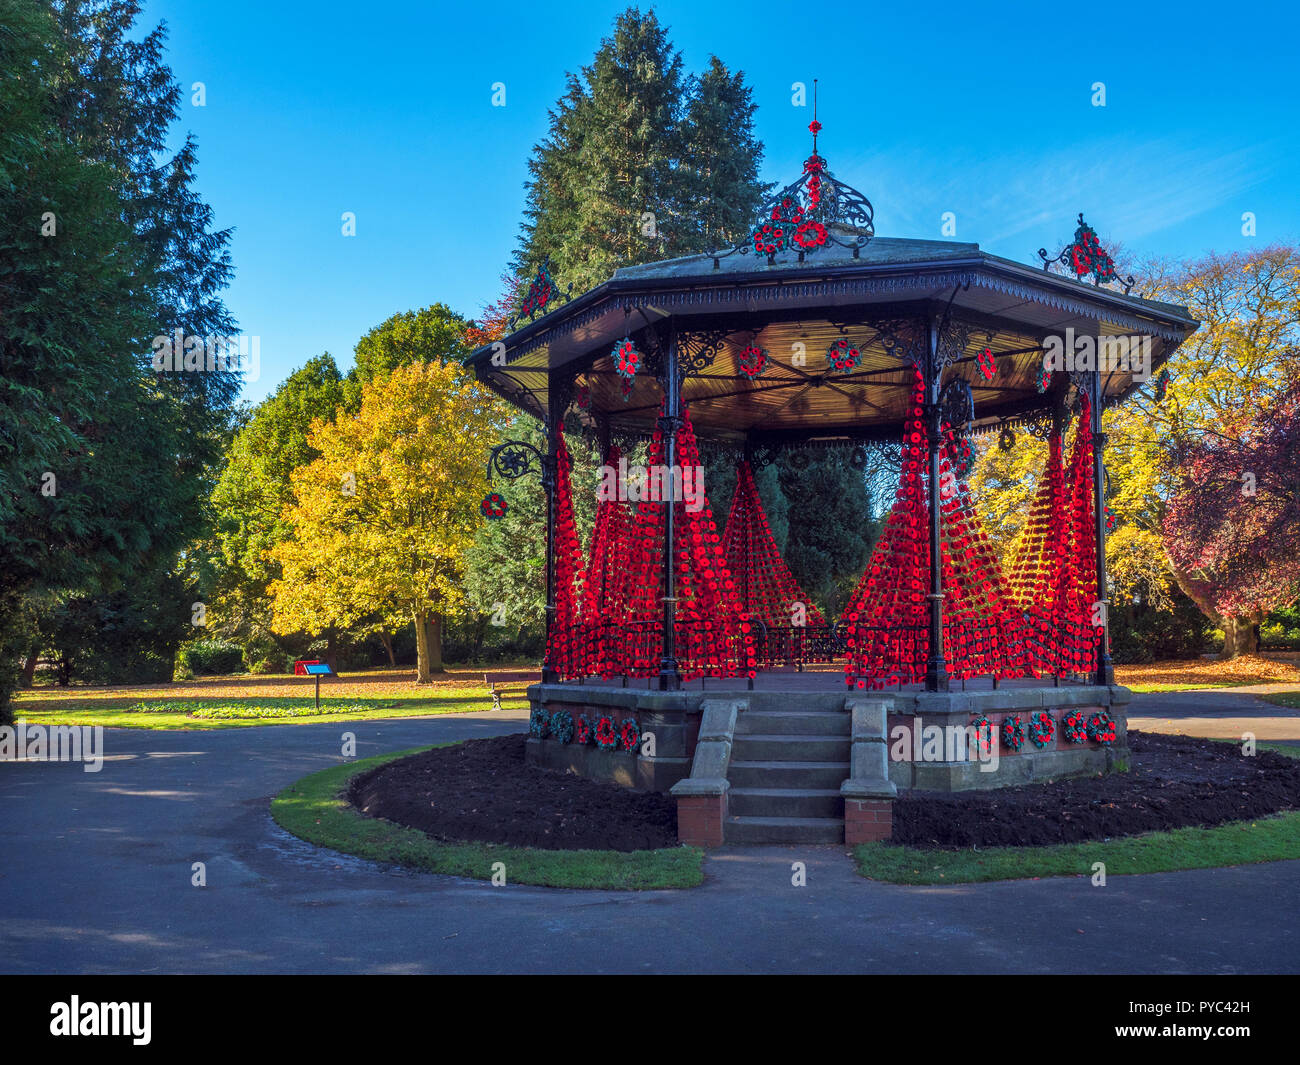 Poppies adorn the bandstand in the Spa Gardens marking 100 years since the end of the First World War Ripon Yorkshire England - Stock Image